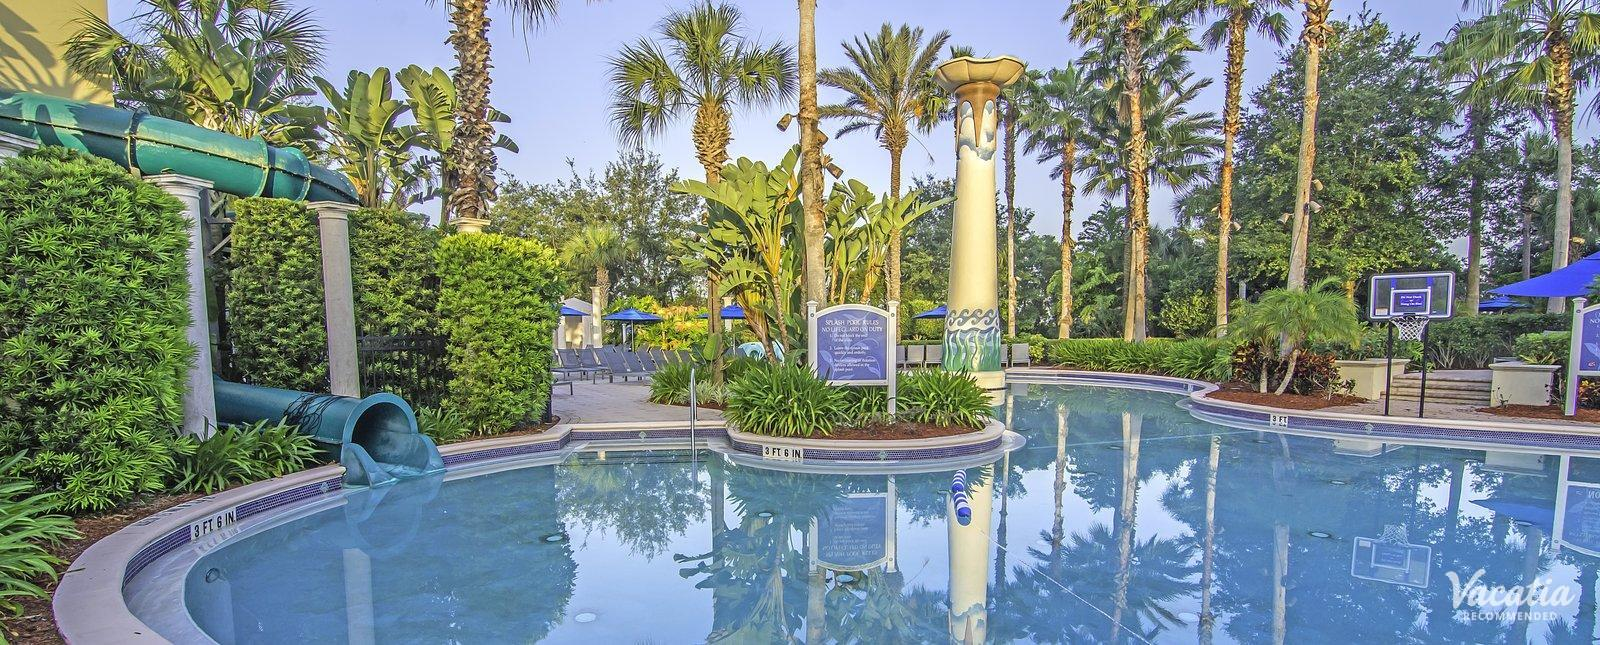 Omni Orlando Resort at ChampionsGate family friendly pools